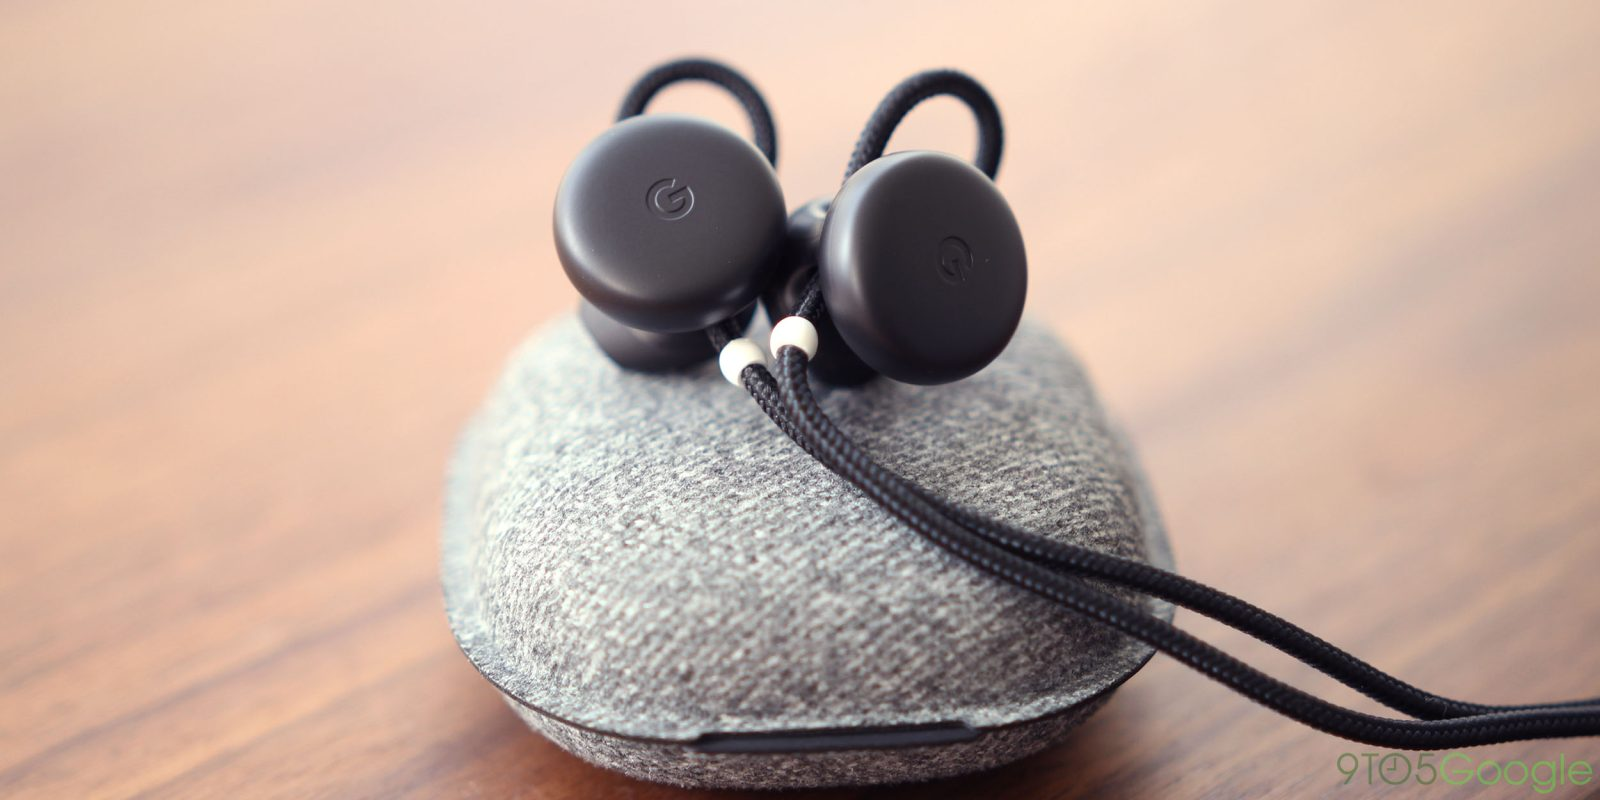 Pixel Buds 2 Wishlist Improvements We Hope To See This Year Home Images Headset Wiring Facebook Twitter Google Where Googles Clever Headphones Need Improve